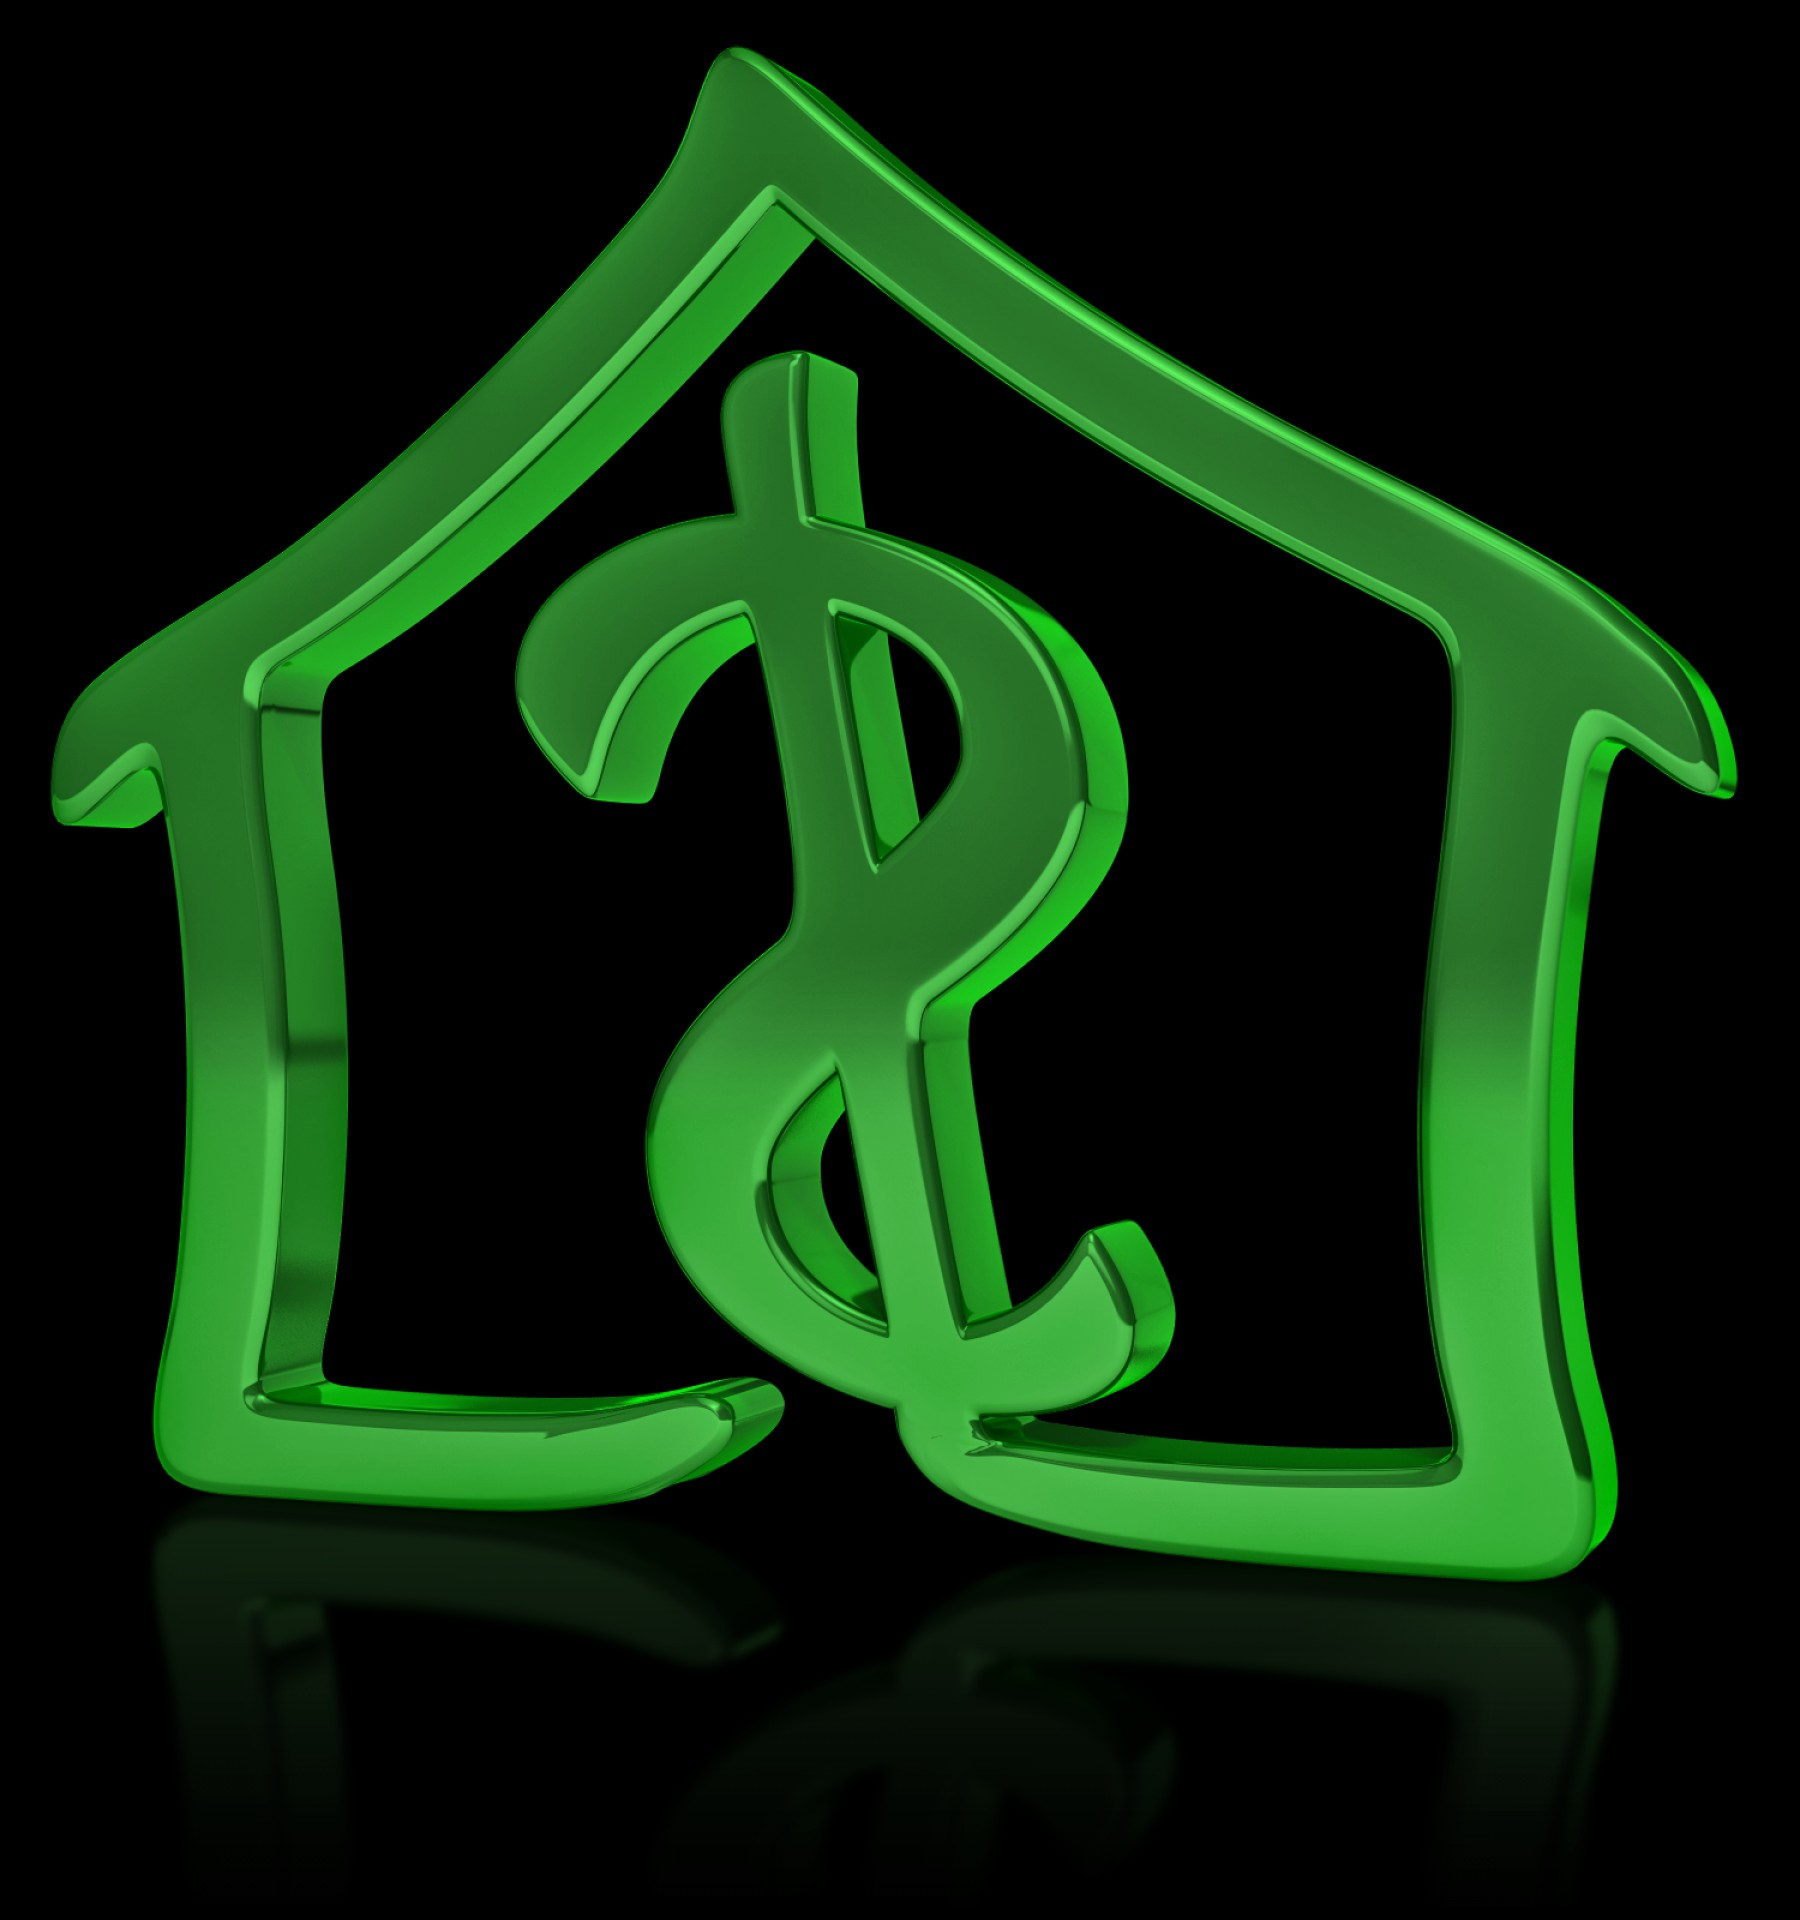 Committee Clipart -Vector: Refinancing Bonds To Save Money For Taxpayers